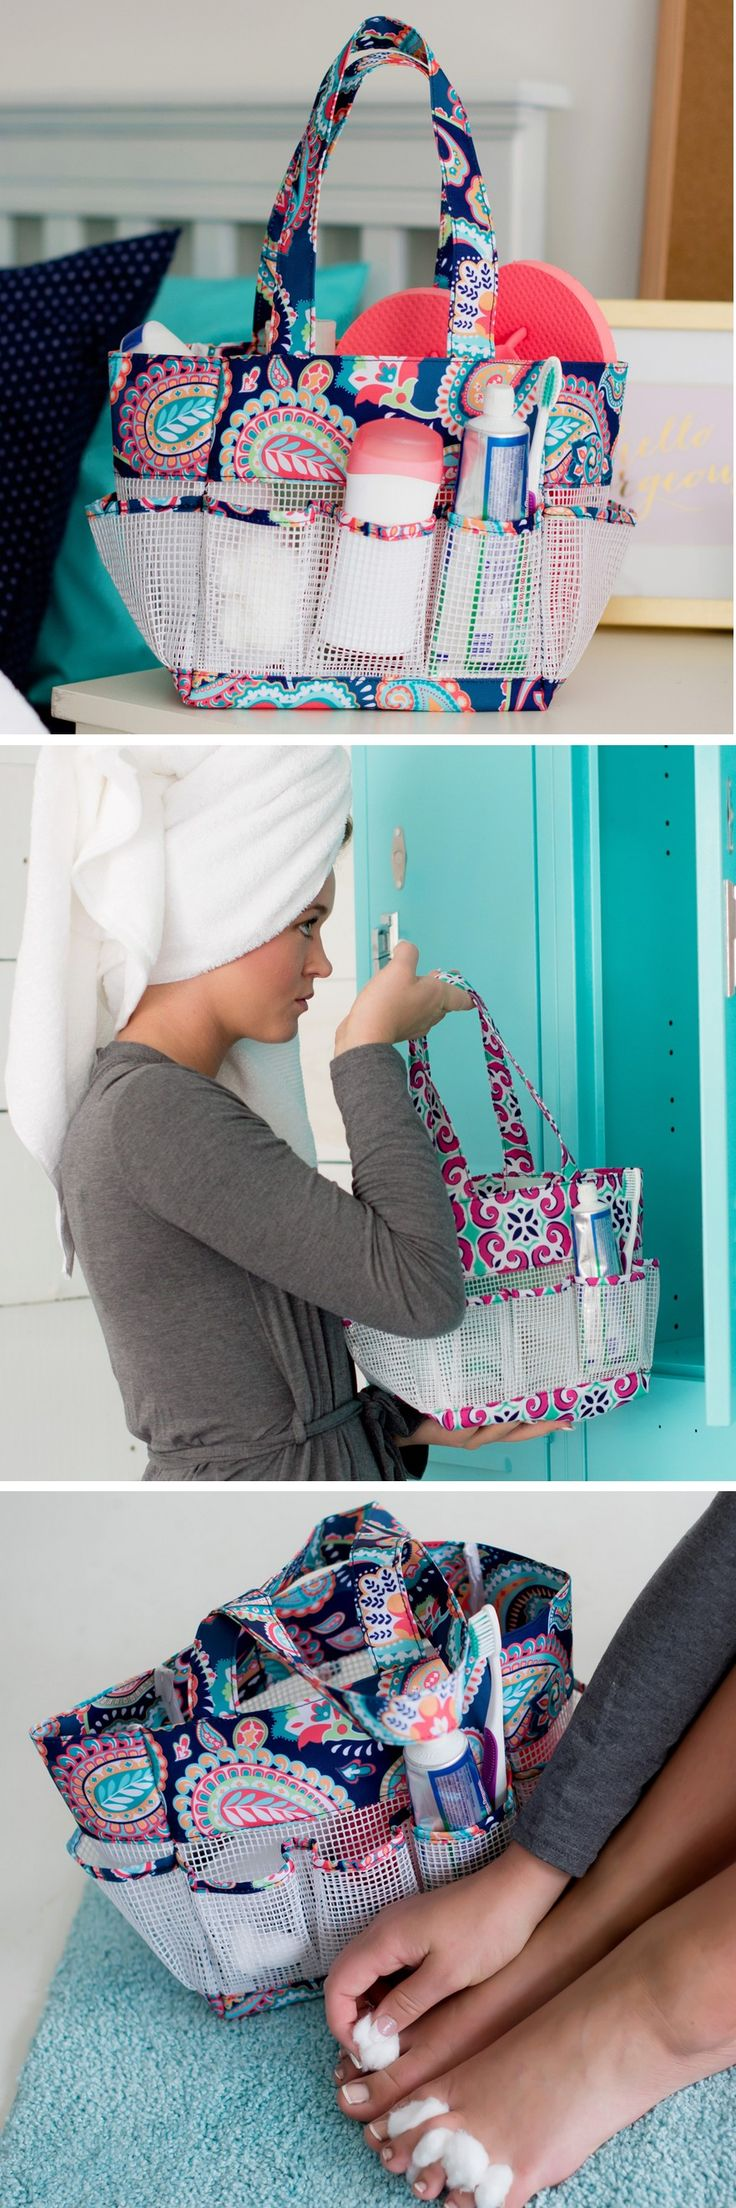 Your daughter, sister, or BFF will think of you every time she uses her mesh shower caddy personalized with her name or monogram initial. With a roomy open center and 7 mesh storage compartments, this light and versatile caddy keeps shower accessories, manicure and pedicure supplies neatly organized for travel to and from her college dorm room. A useful graduation gift for girls, this portable shower organizer can be ordered at https://www.tippytoad.com/personalized-mesh-shower-caddies.asp